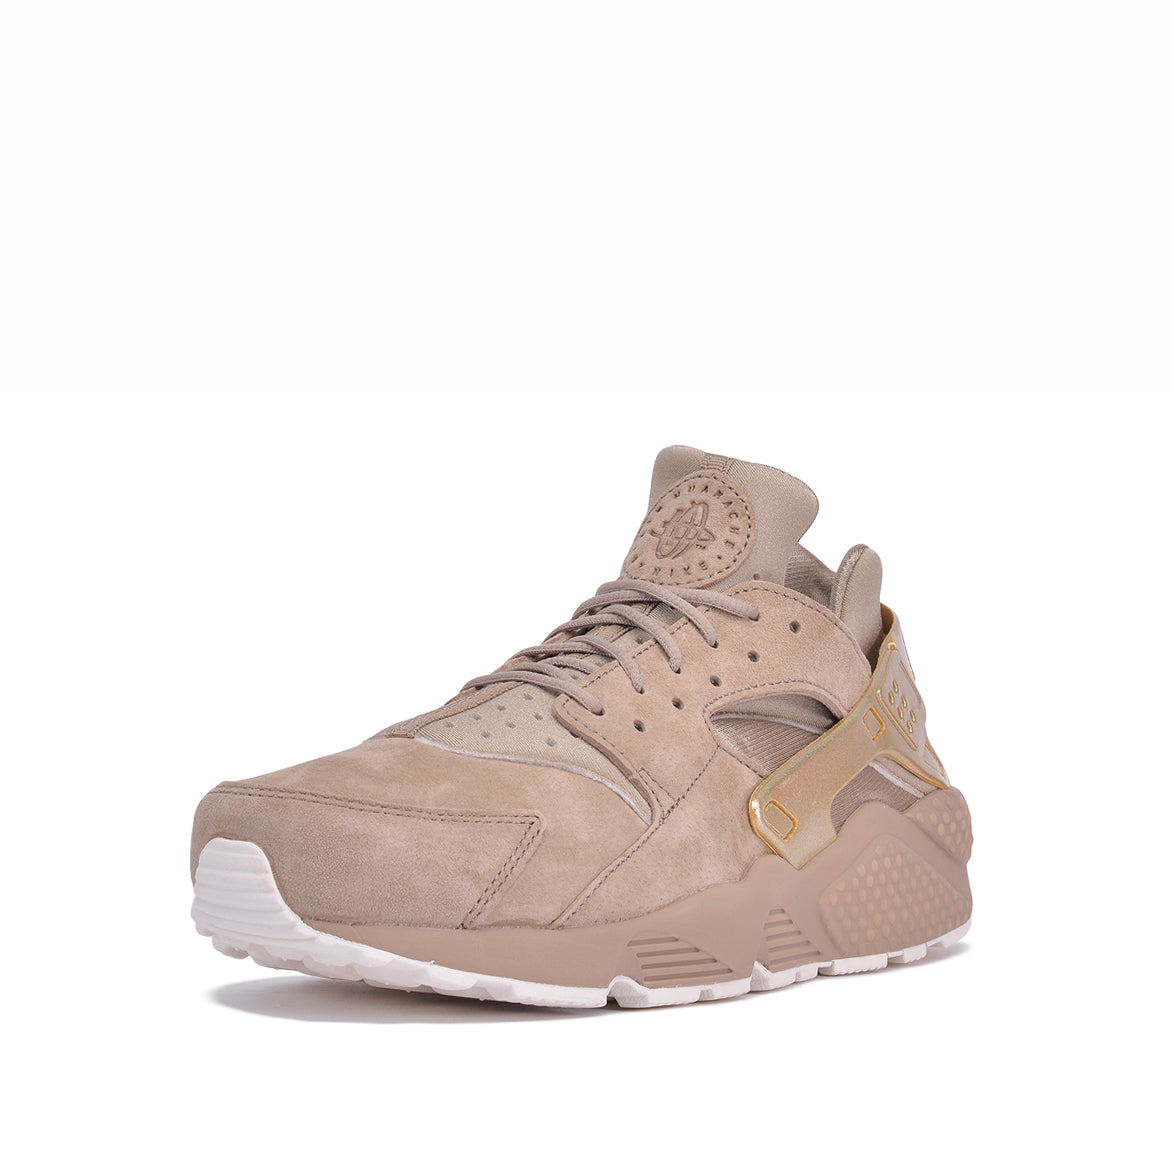 AIR HUARACHE RUN PRM - KHAKI / METALLIC GOLD COIN